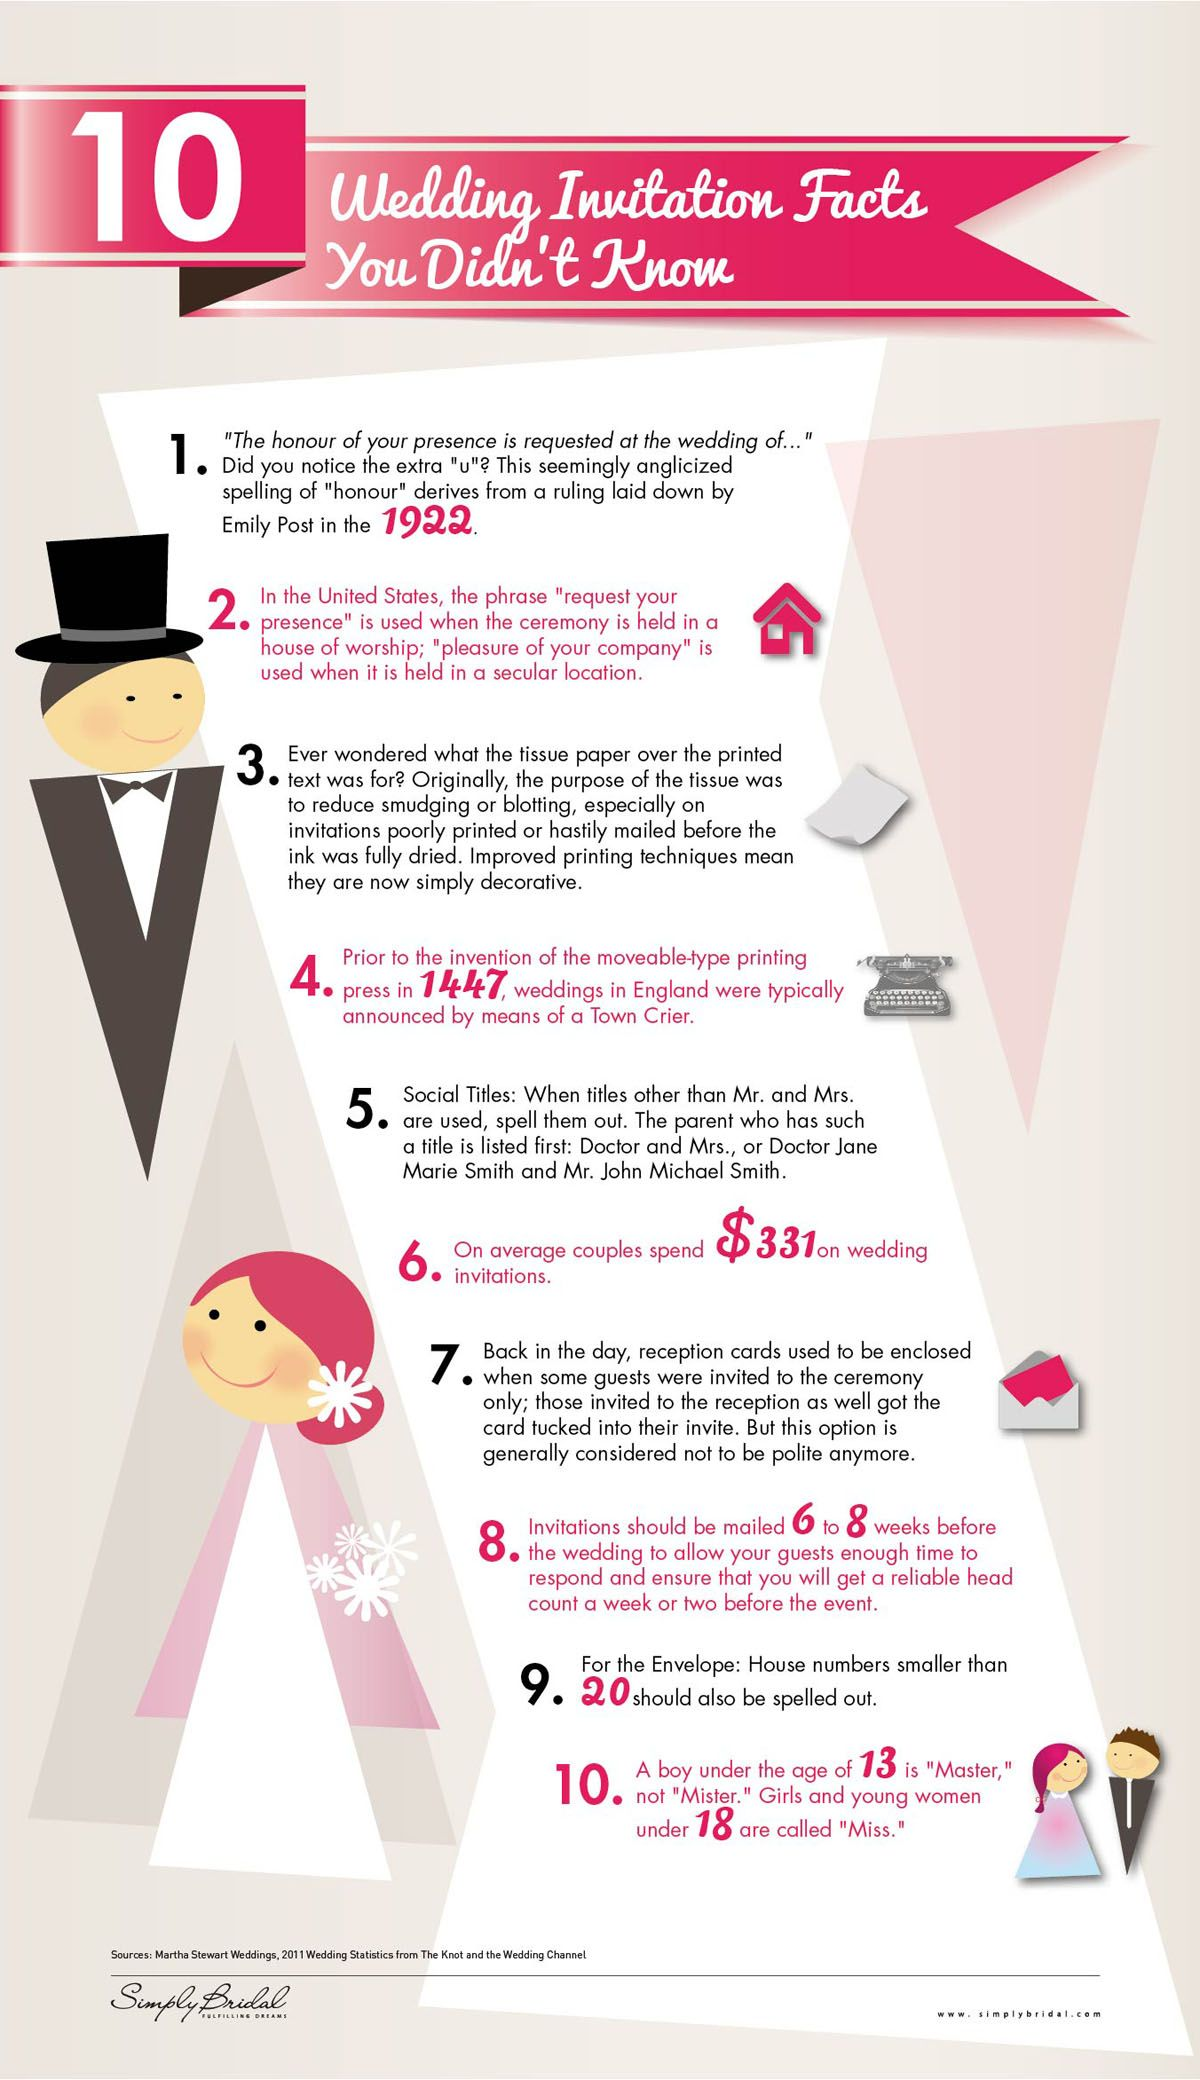 10 Surprising Facts About Wedding Invitations | Wedding, Wedding and ...